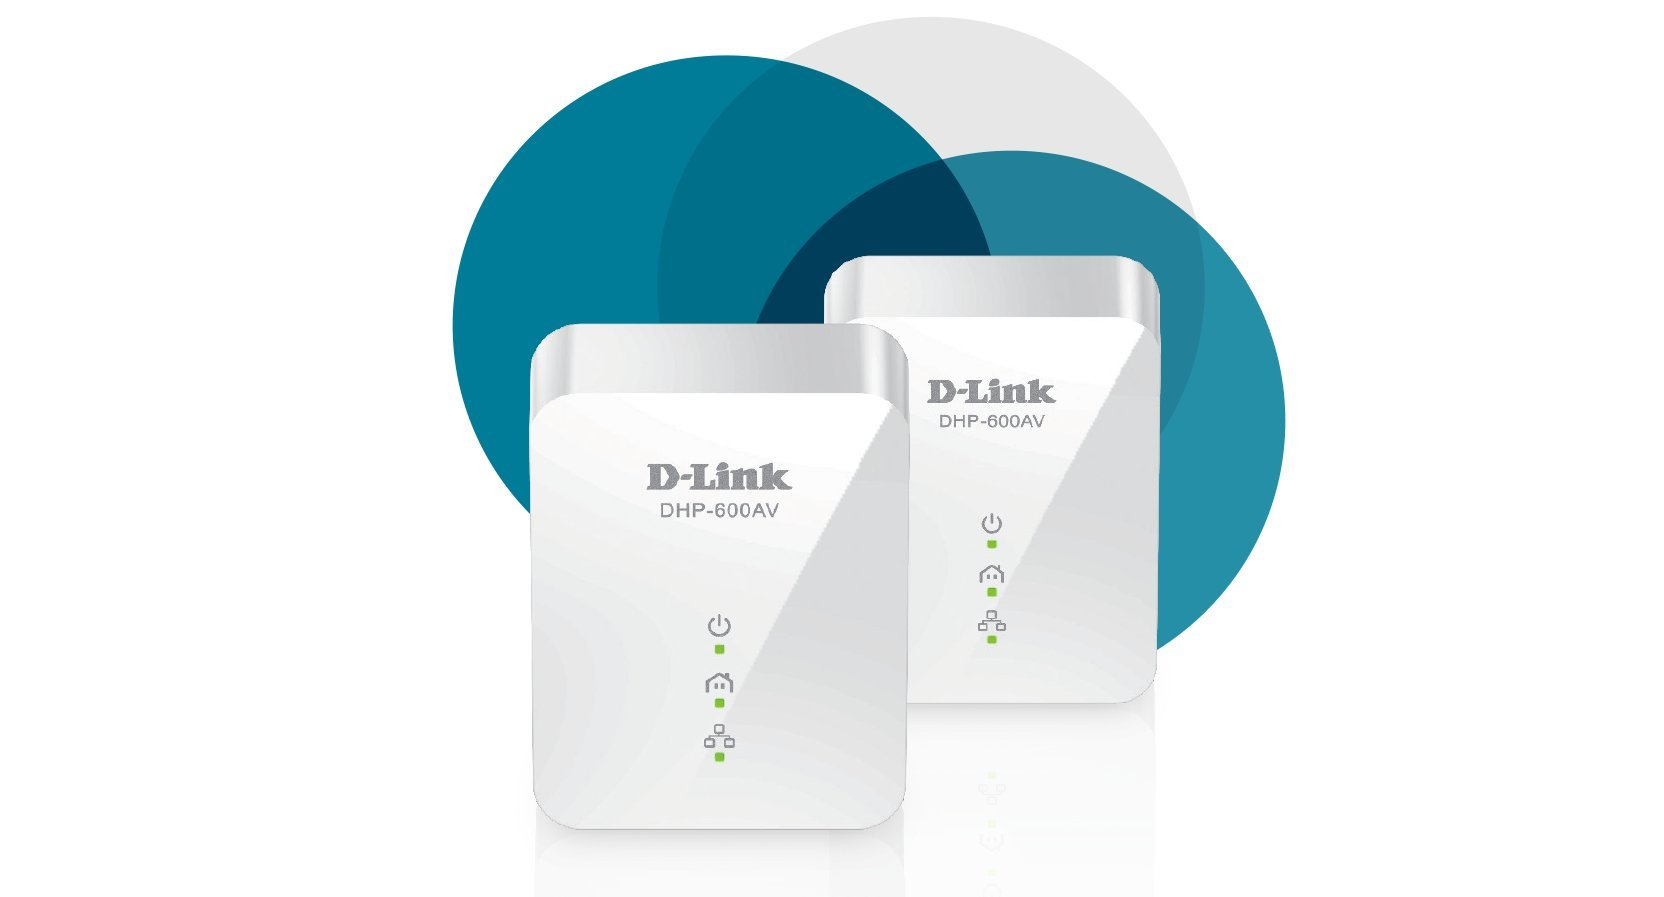 D-Link Powerline 1000 Mbps, 1 Gigabit Port (DHP-601AV) by D-Link